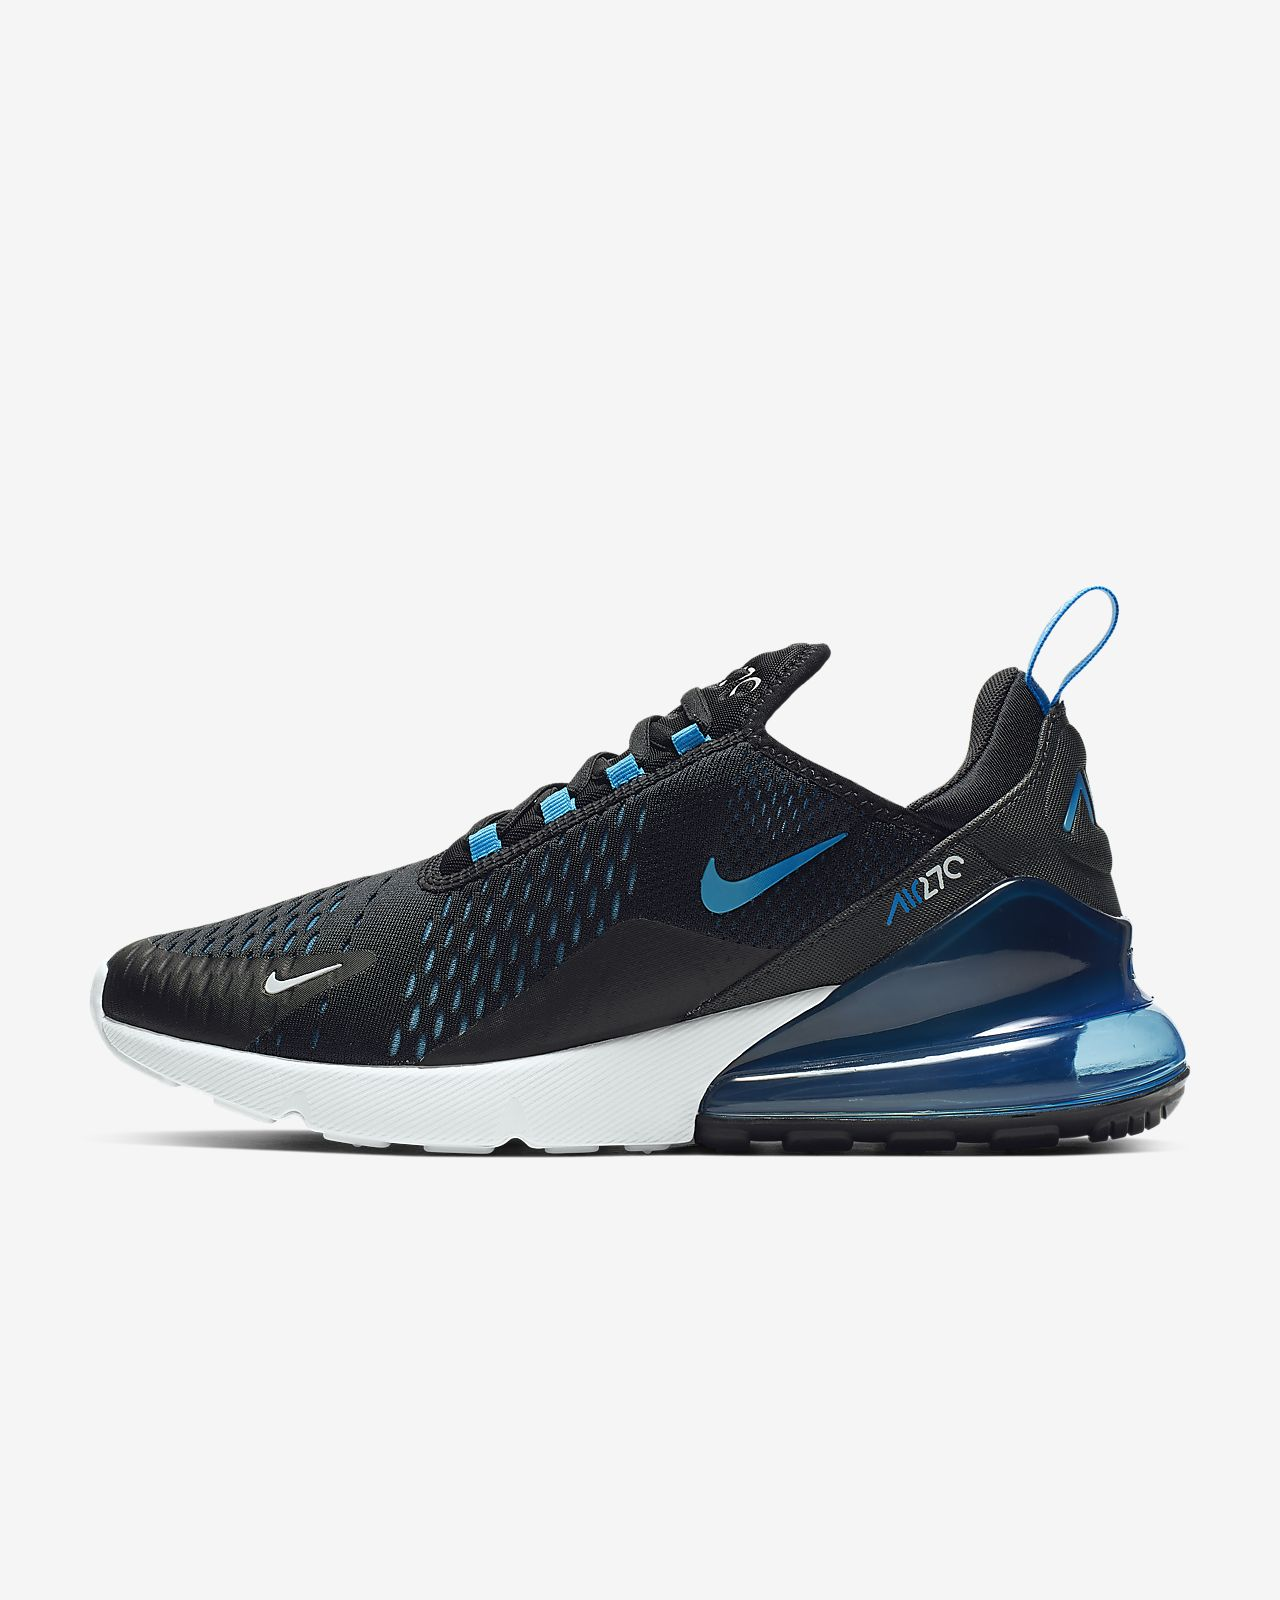 meet 253dc 19843 Men s Shoe. Nike Air Max 270